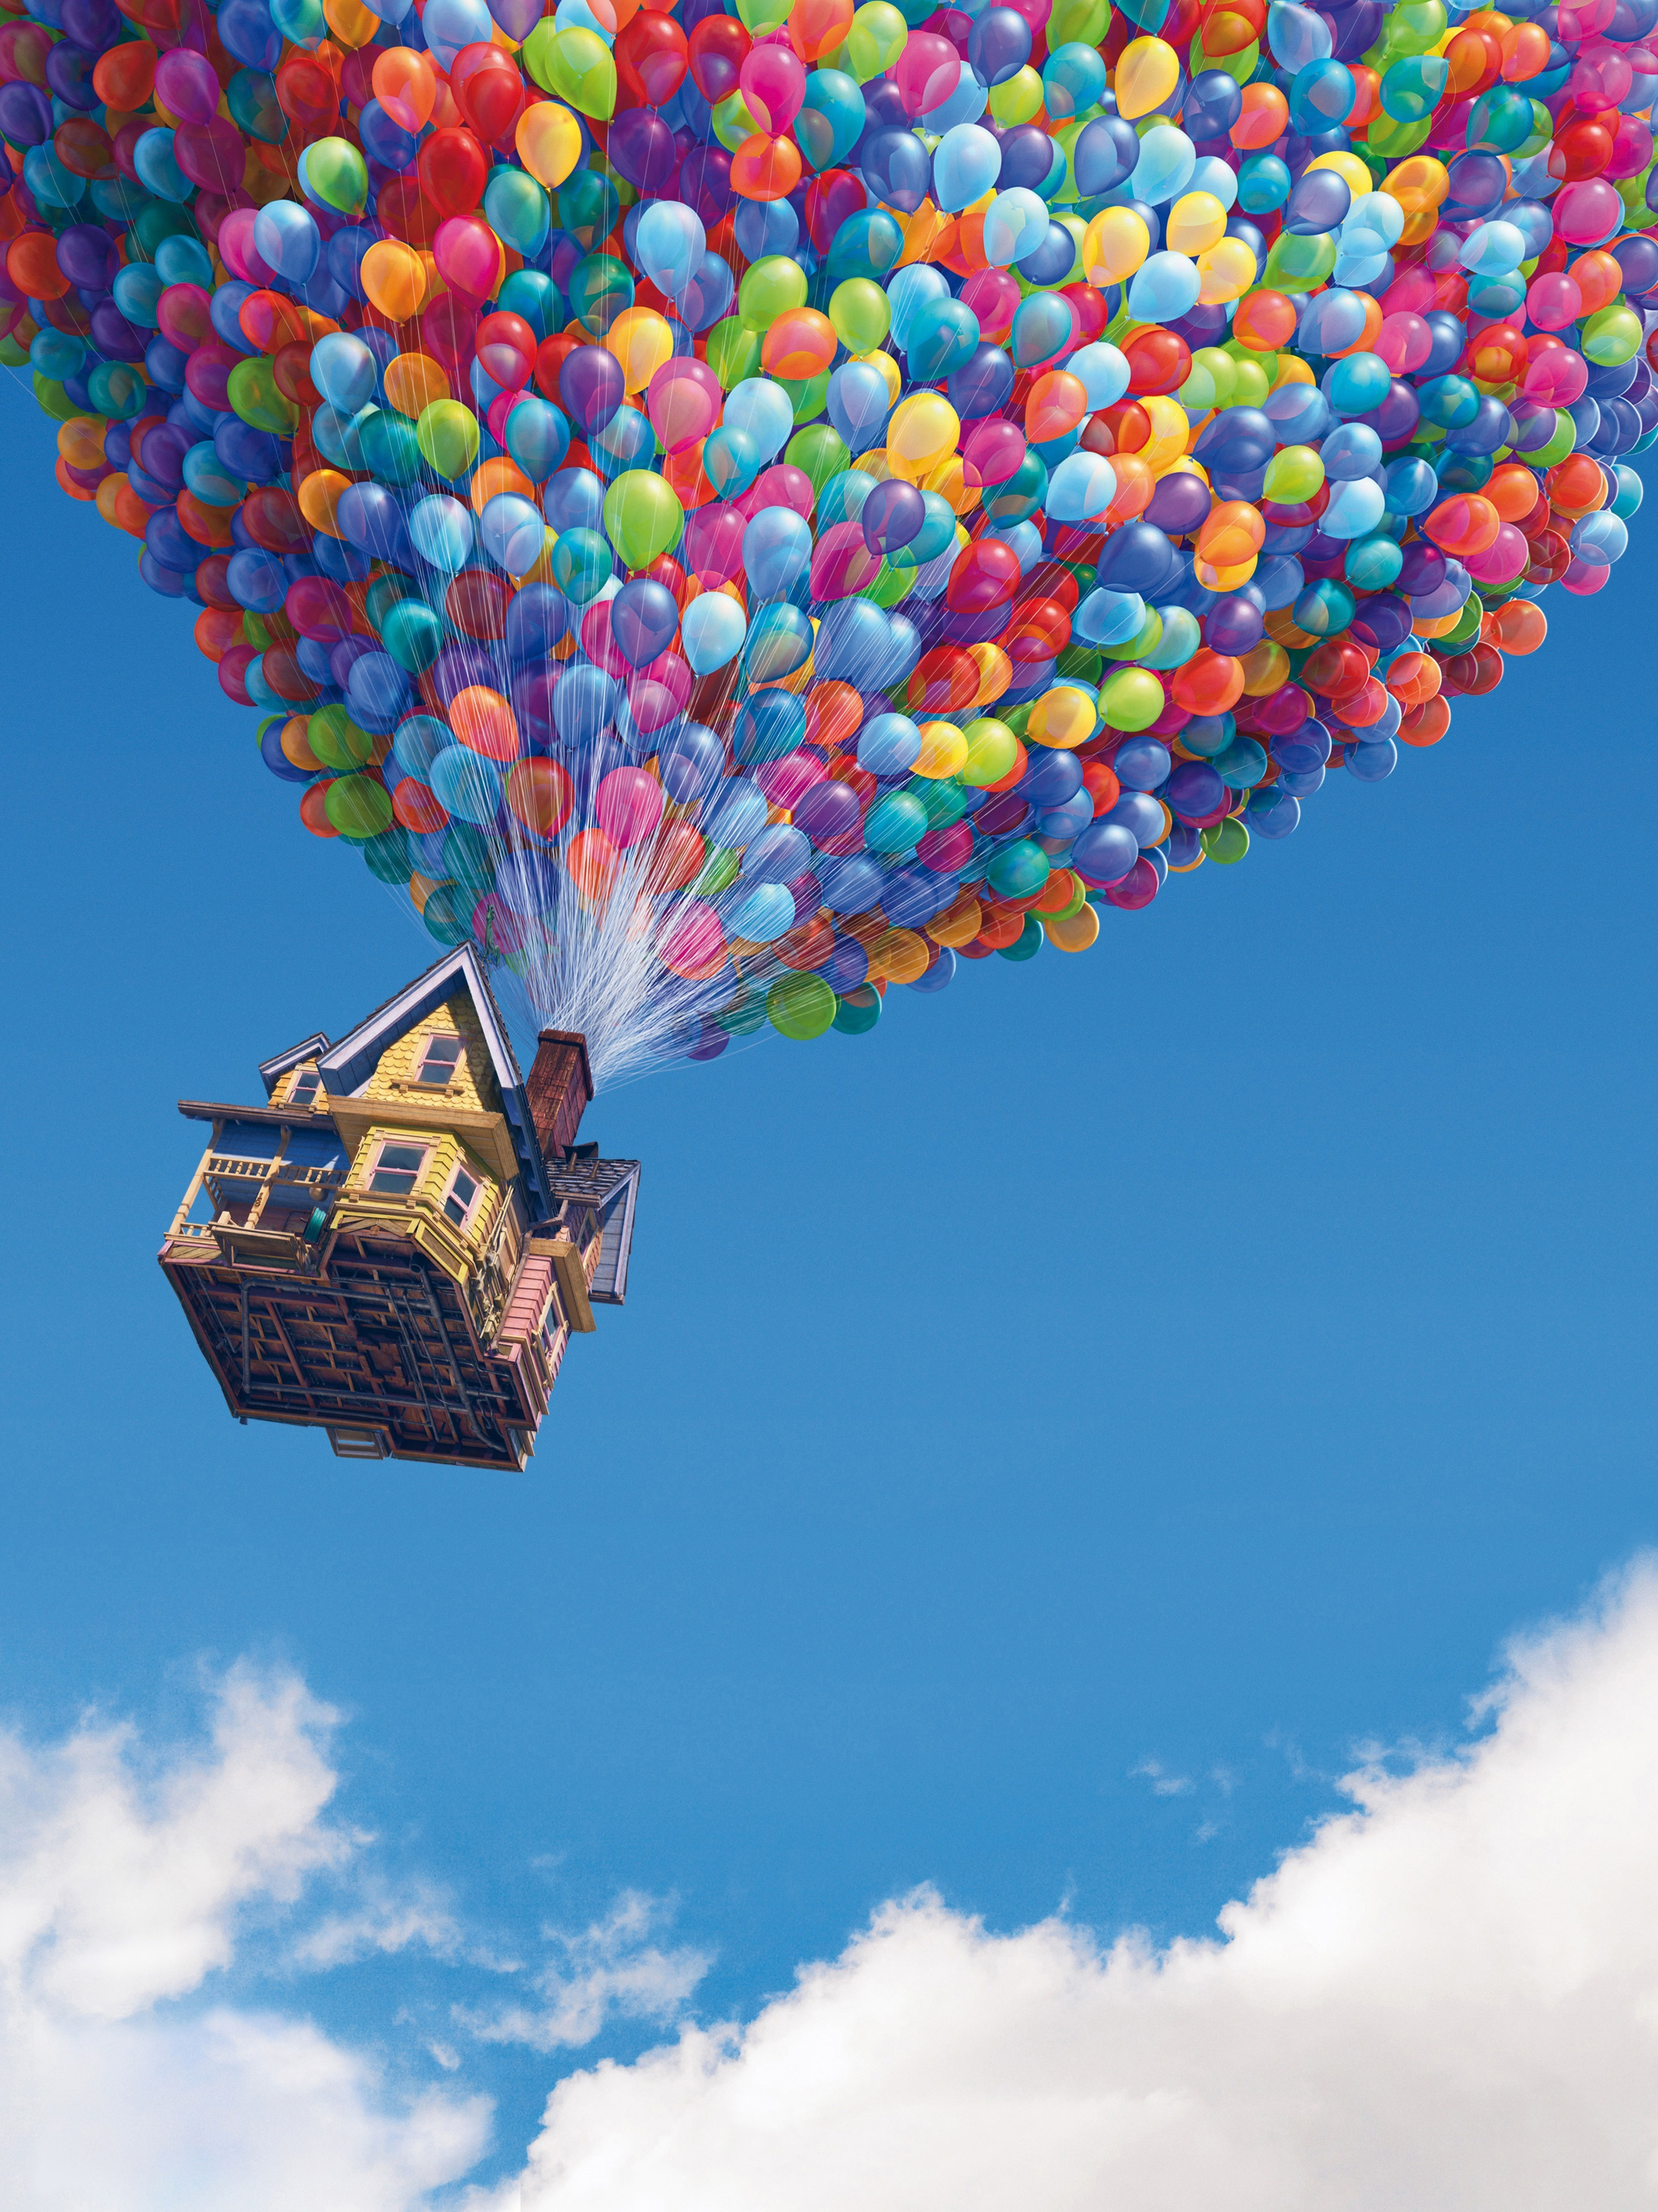 Movies Up (movie) Balloons HD Wallpaper